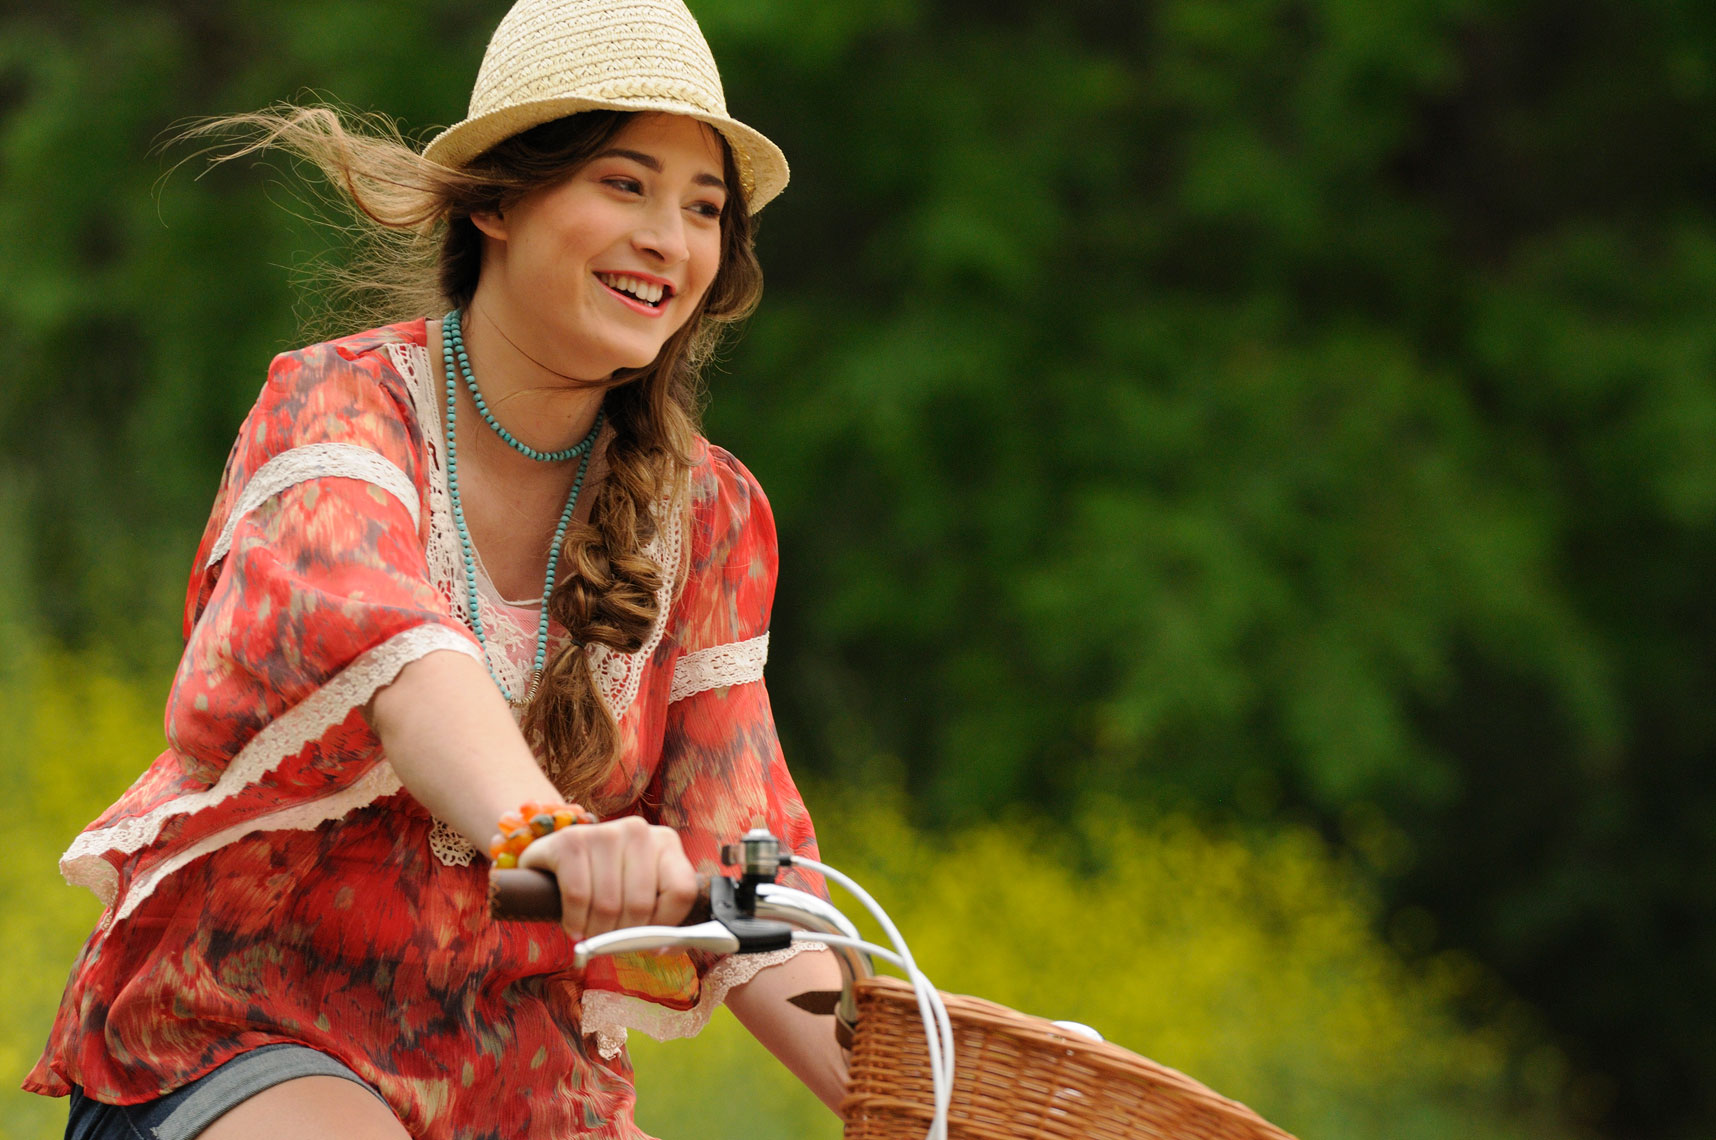 Young-woman-riding-a-bike-and-smiling